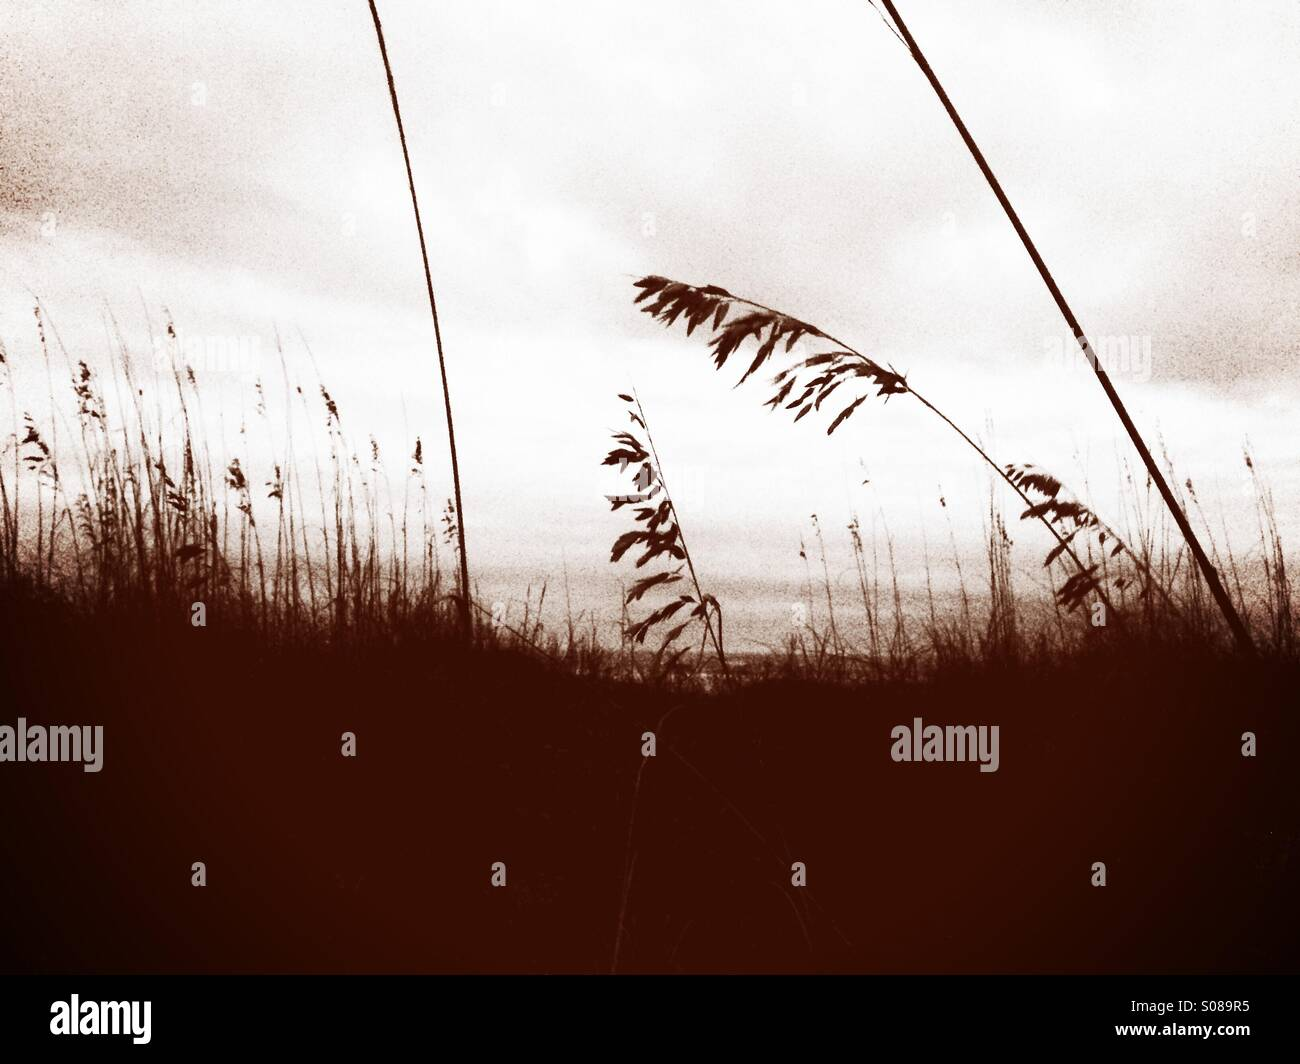 Sea oats are silhouetted against an overcast sky in this sepia-toned image. - Stock Image